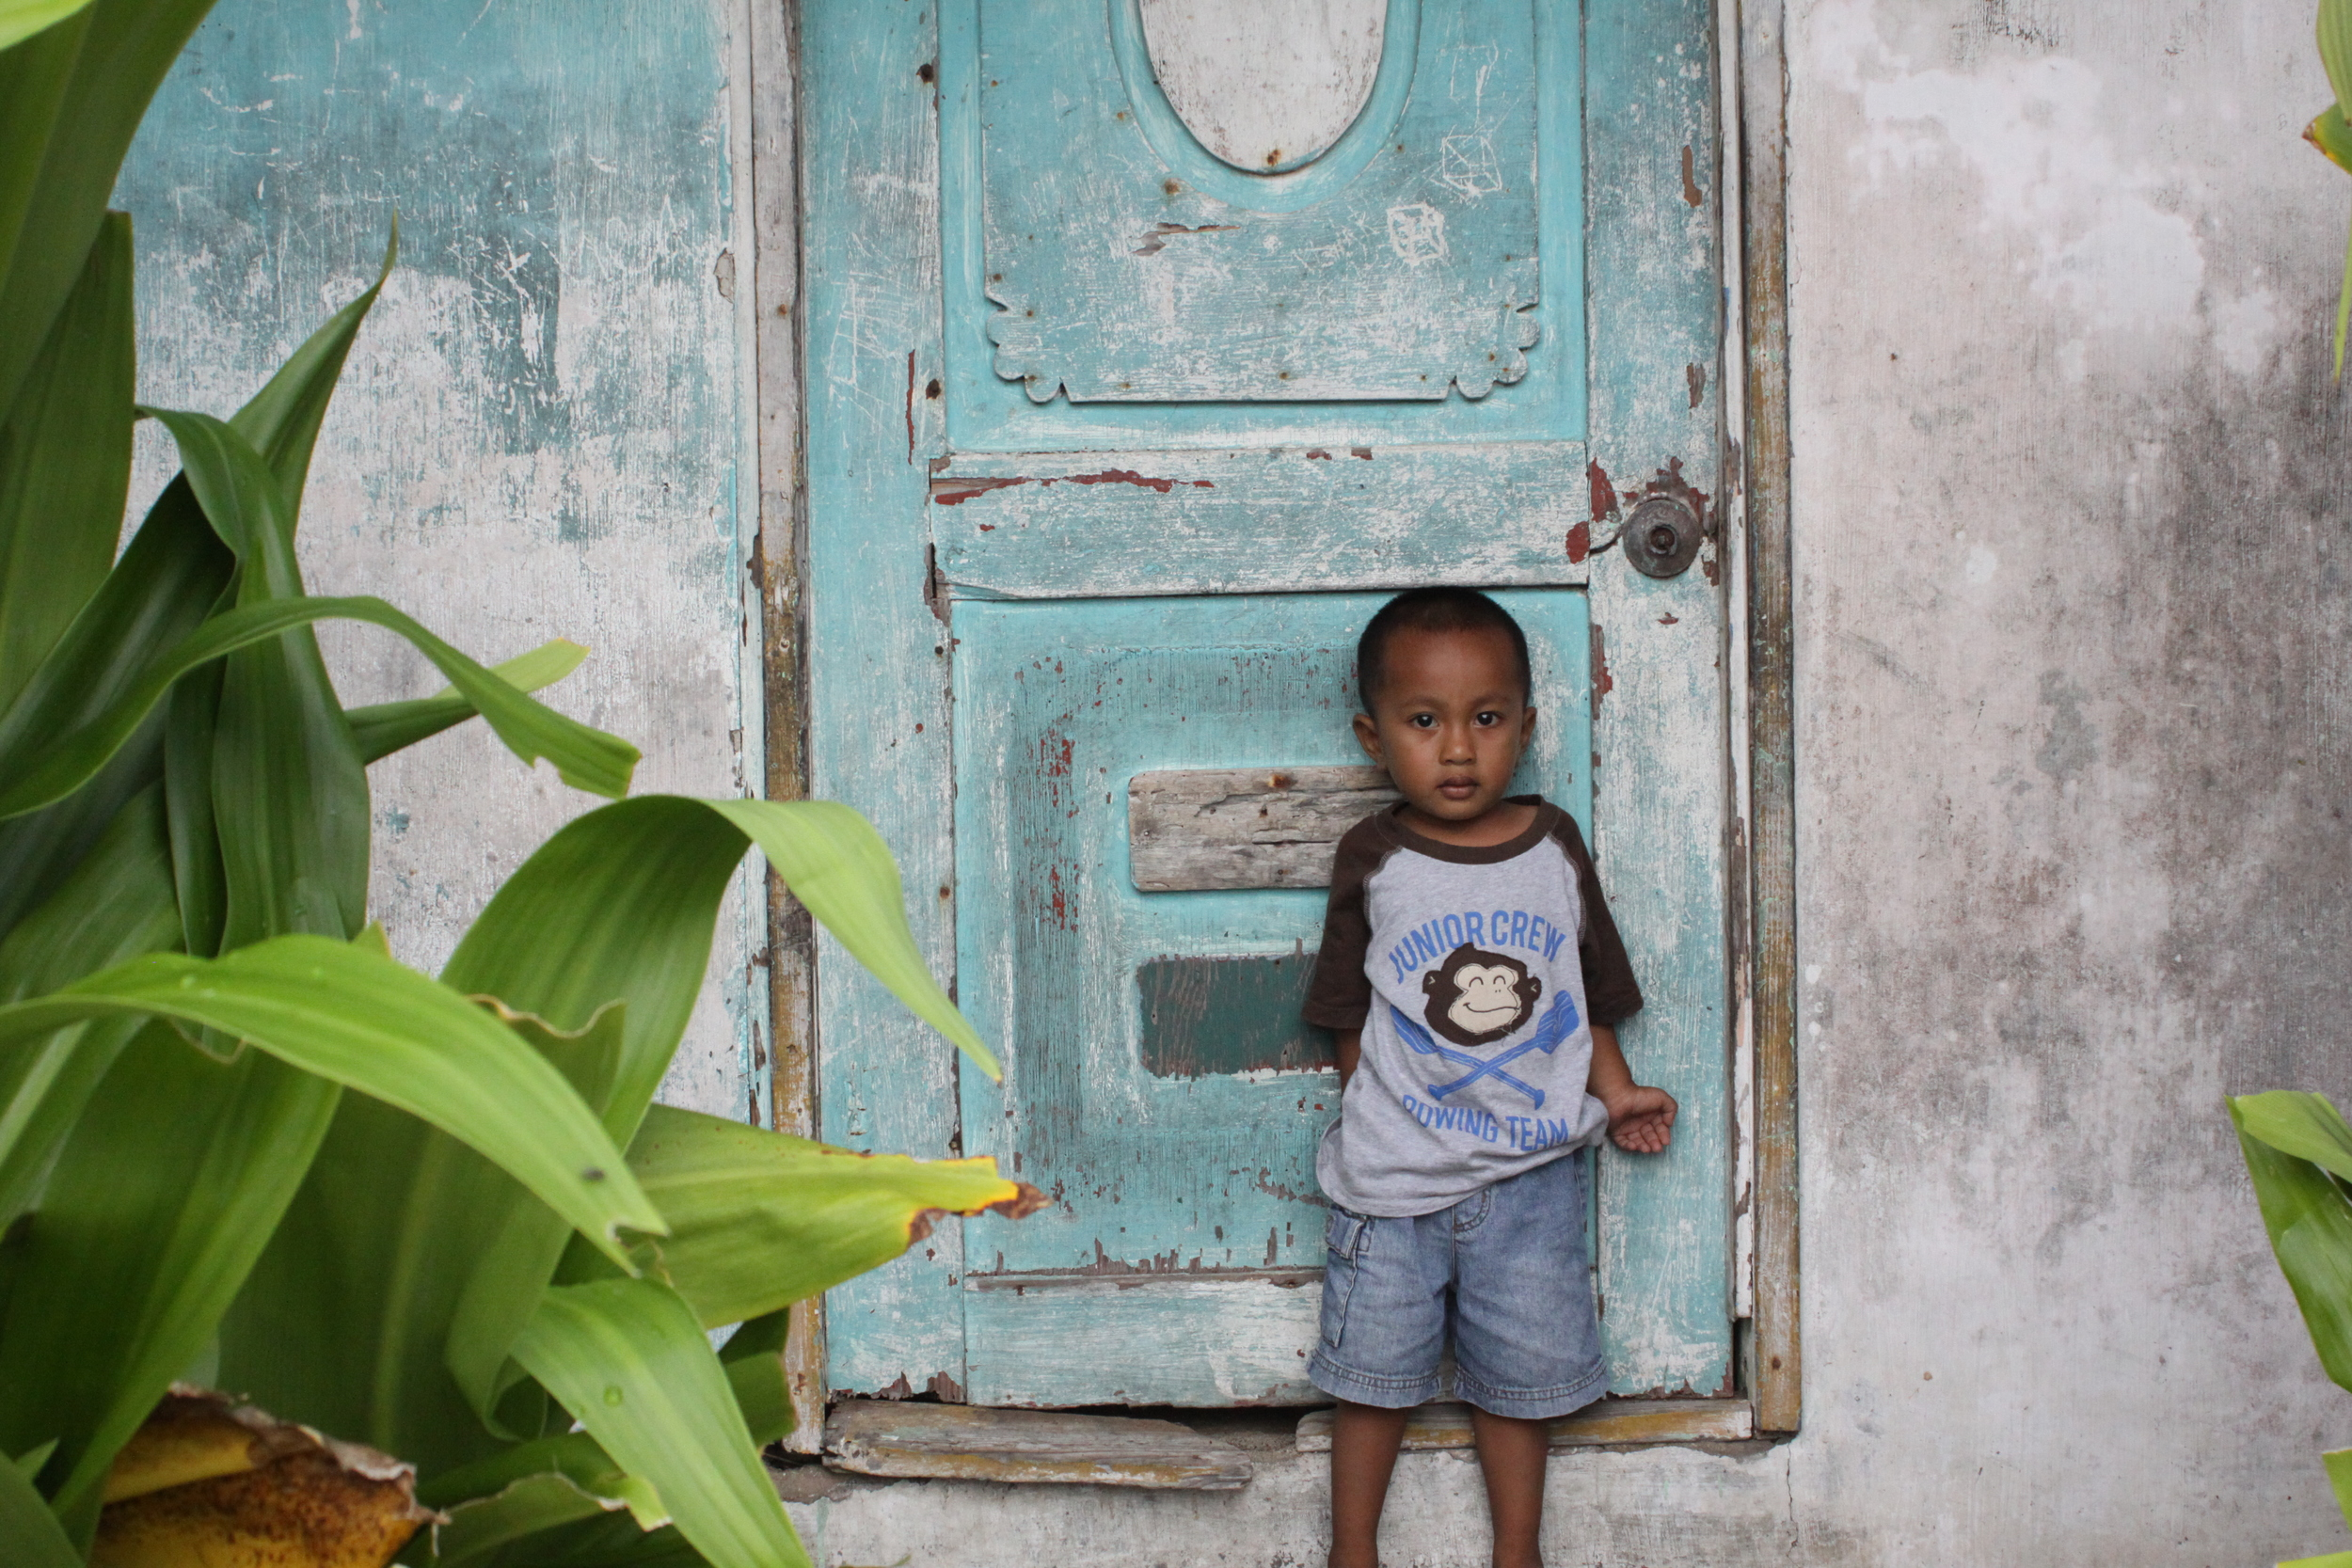 Boy of Marshall Islands, Photo by Brook Meakins